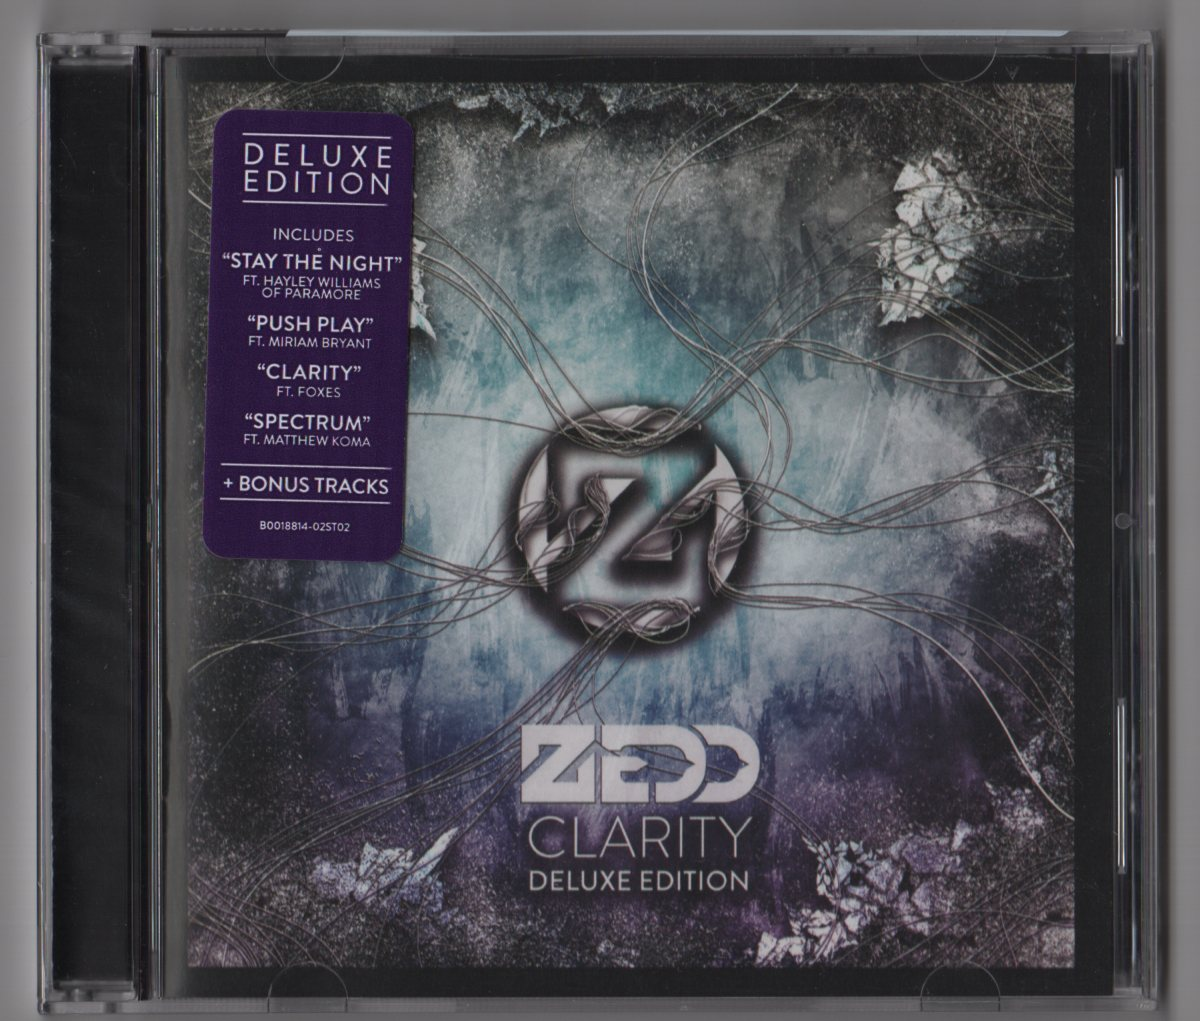 Zedd – Clarity (CD, Deluxe Edition) - 207.7KB